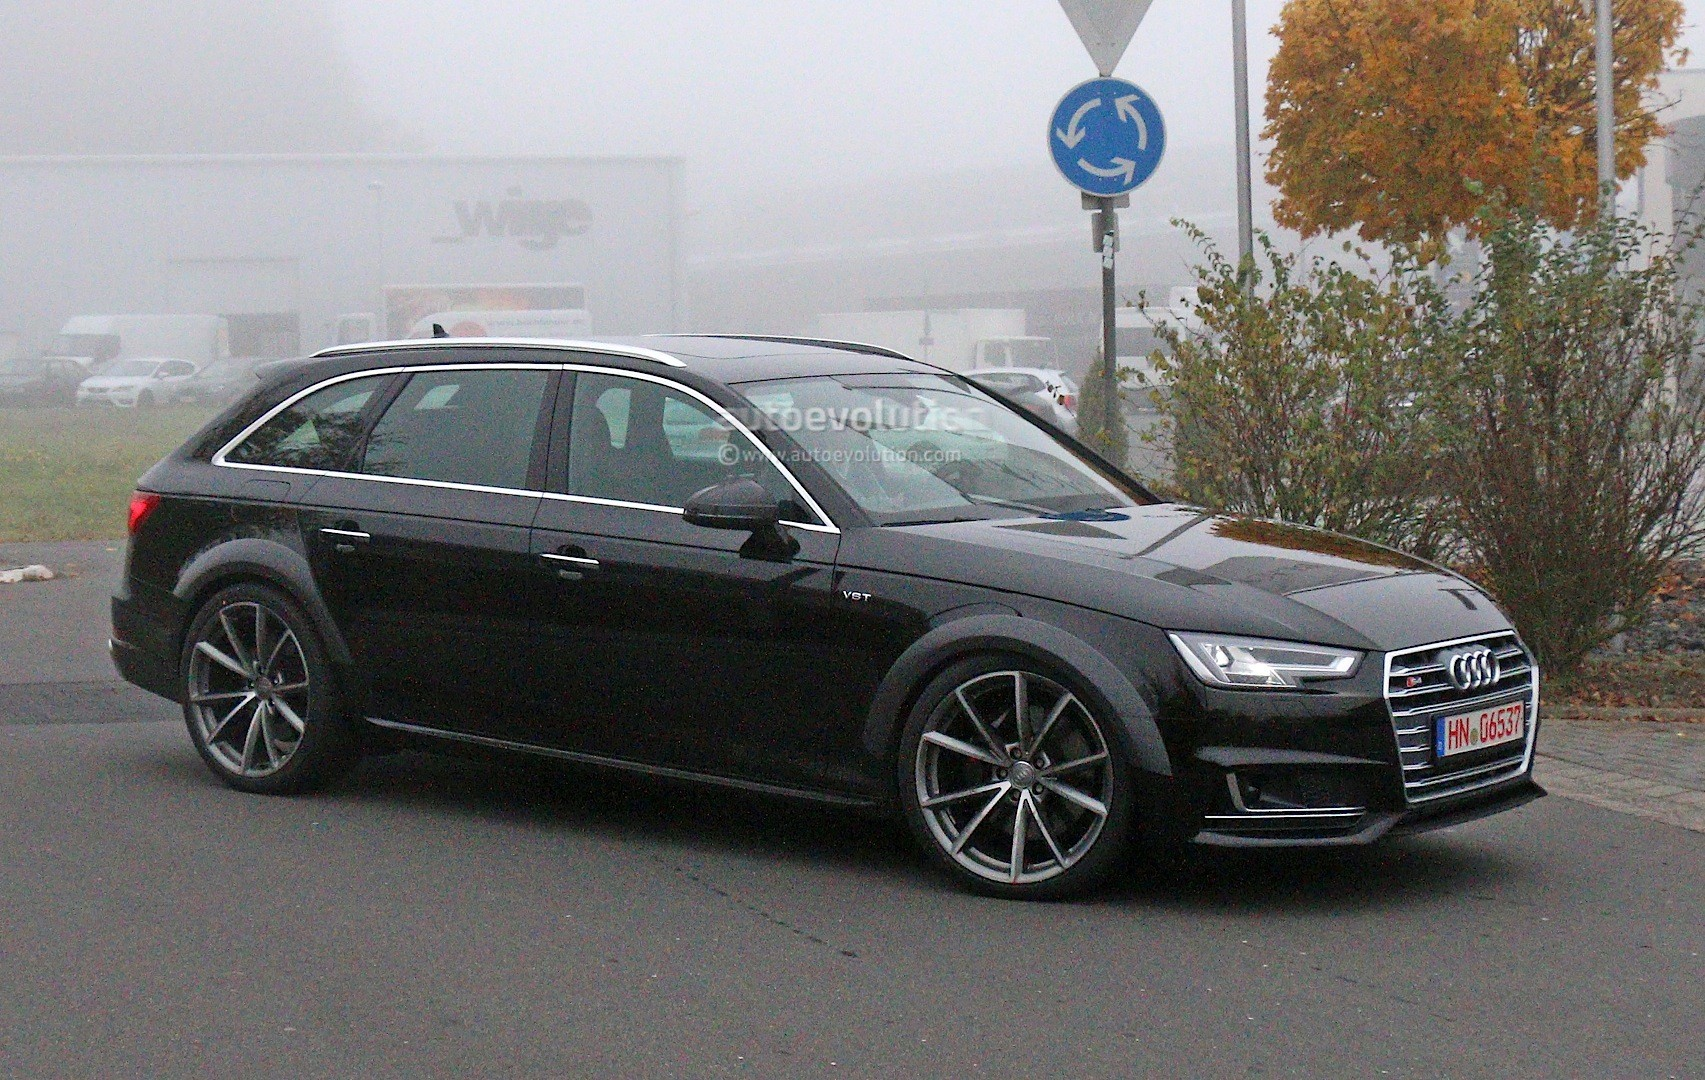 Early Audi RS Avant Chassis Testing Mule This Could Be It - Audi car 04